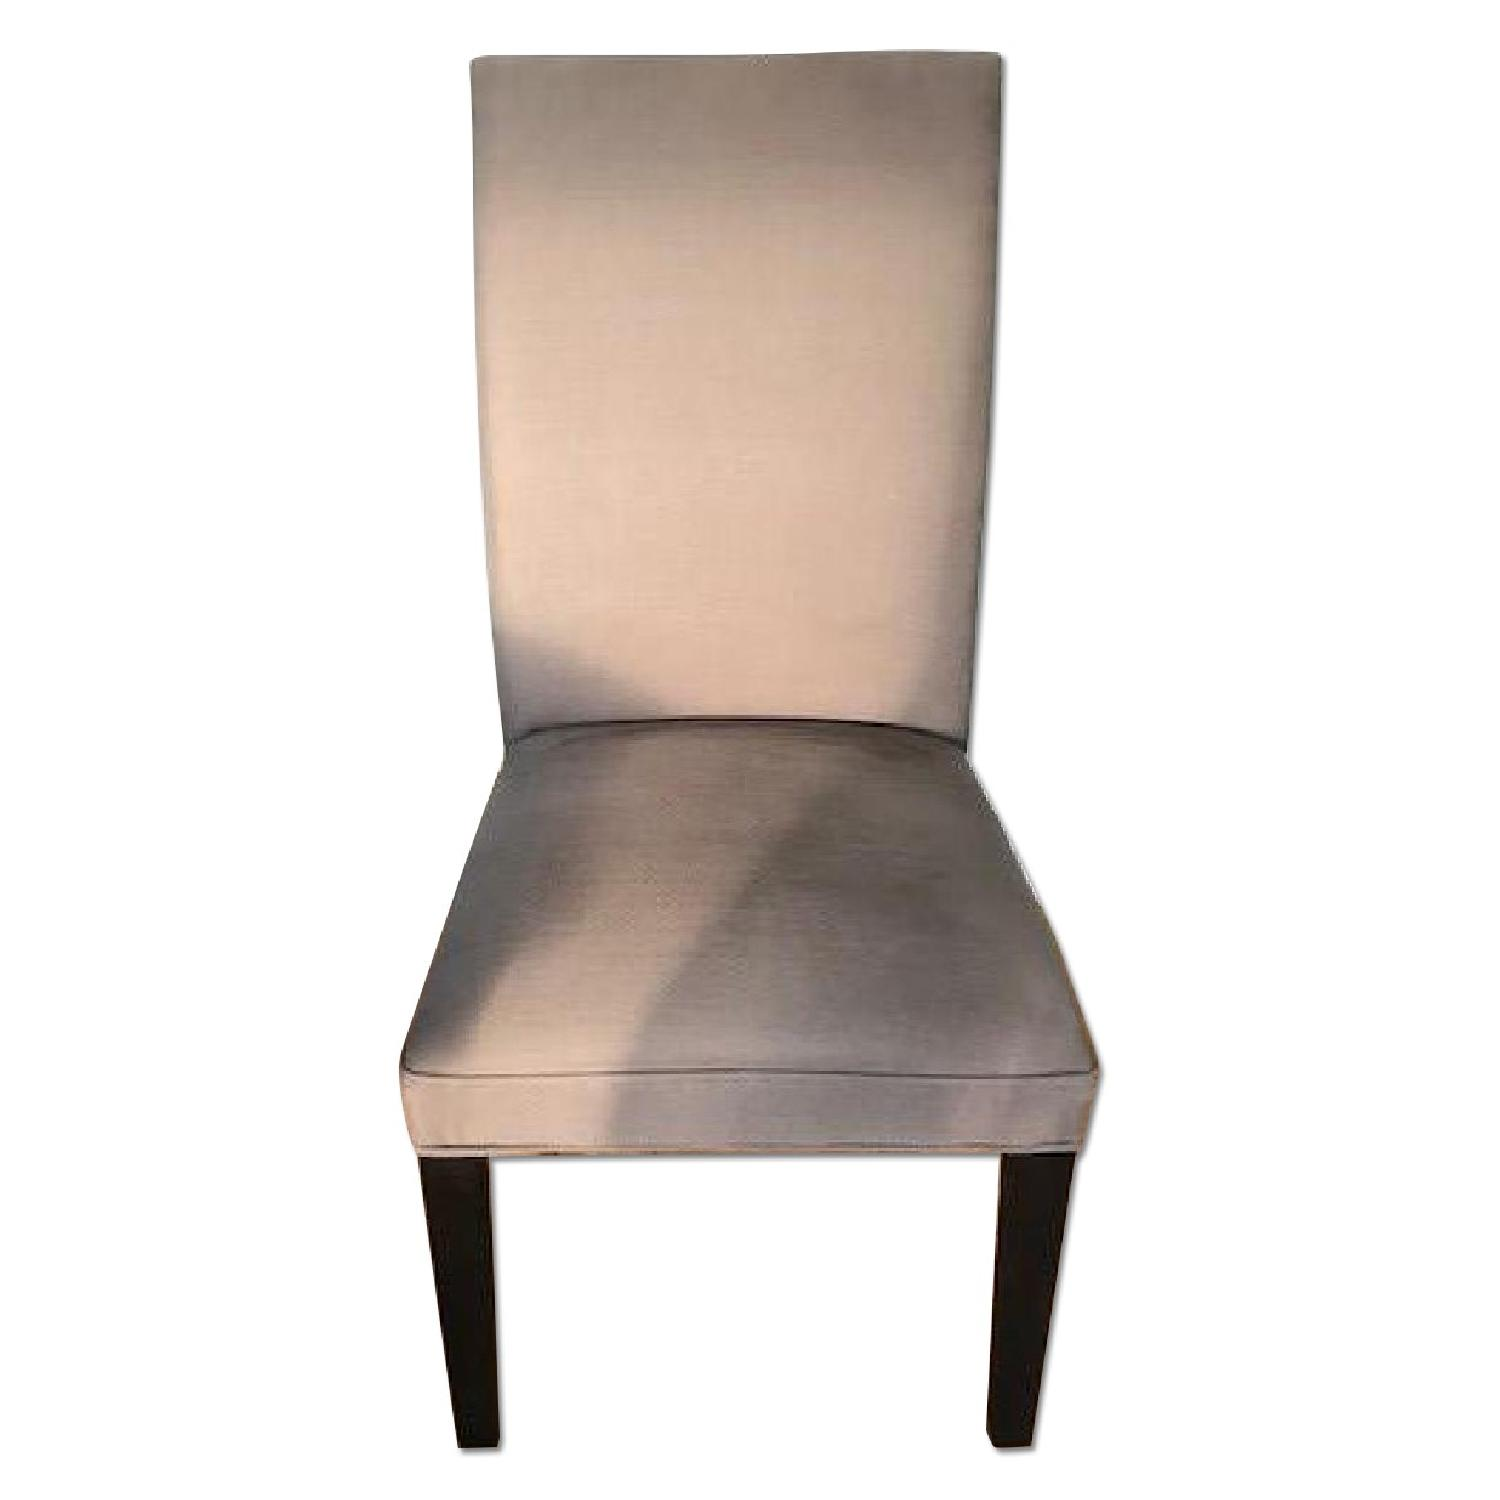 restoration hardware hudson parsons fabric side chair. Black Bedroom Furniture Sets. Home Design Ideas